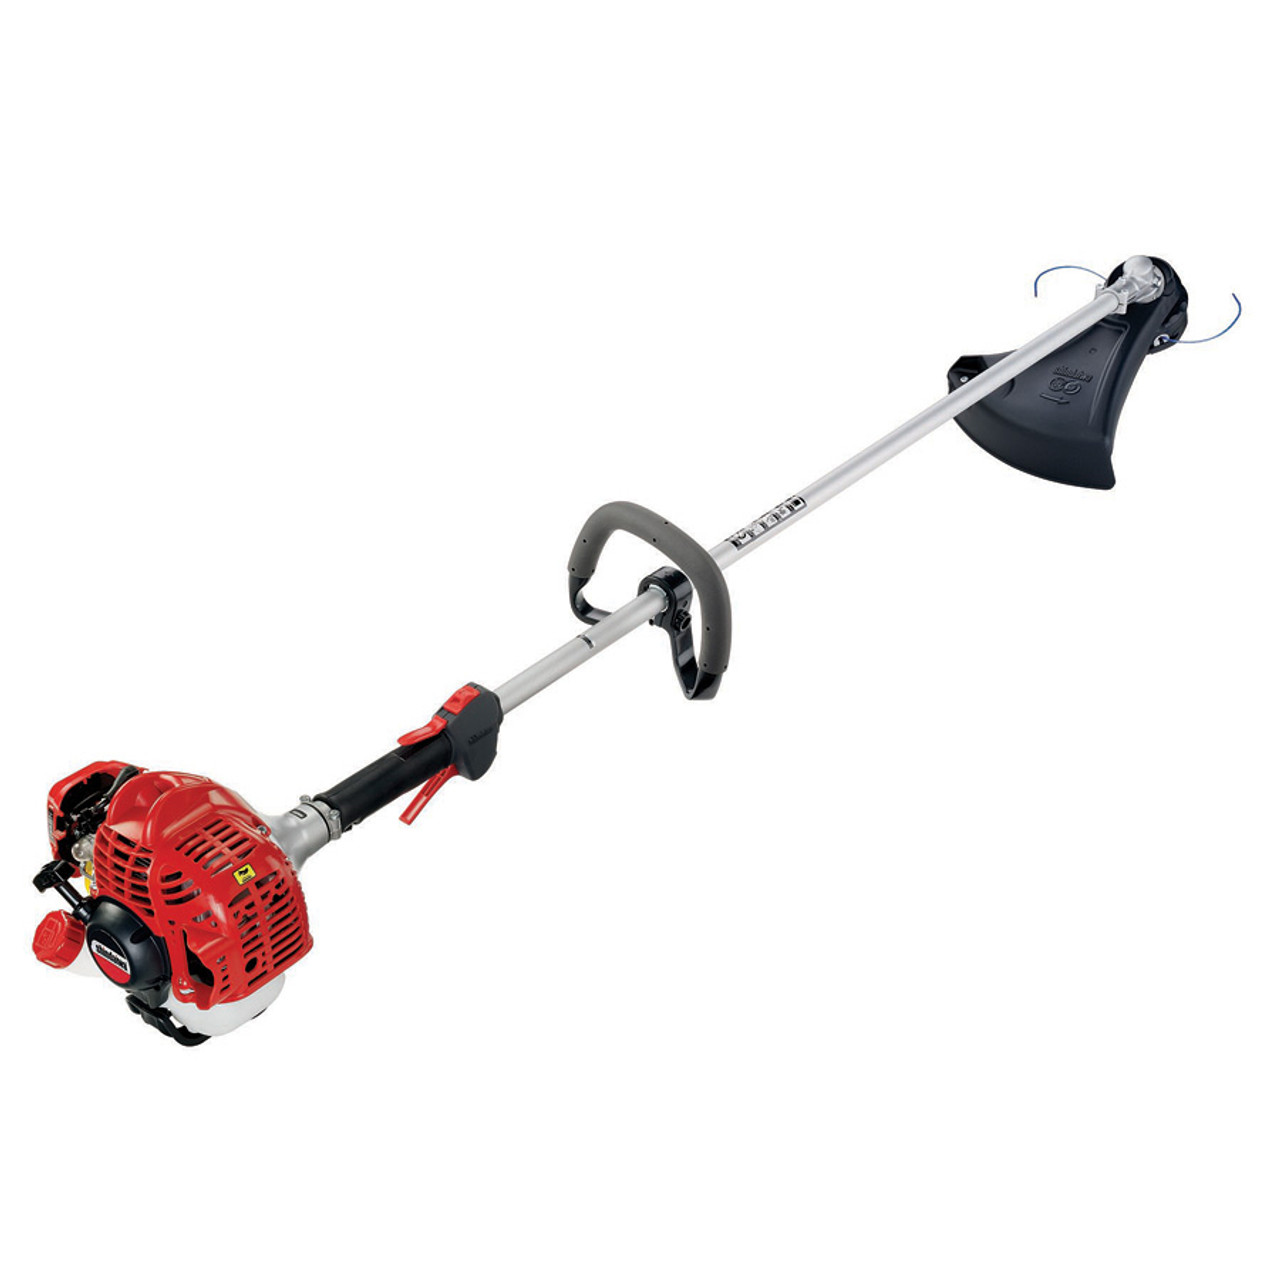 "Shindaiwa T235 20"" 21cc Solid Straight Shaft String Trimmer Image"